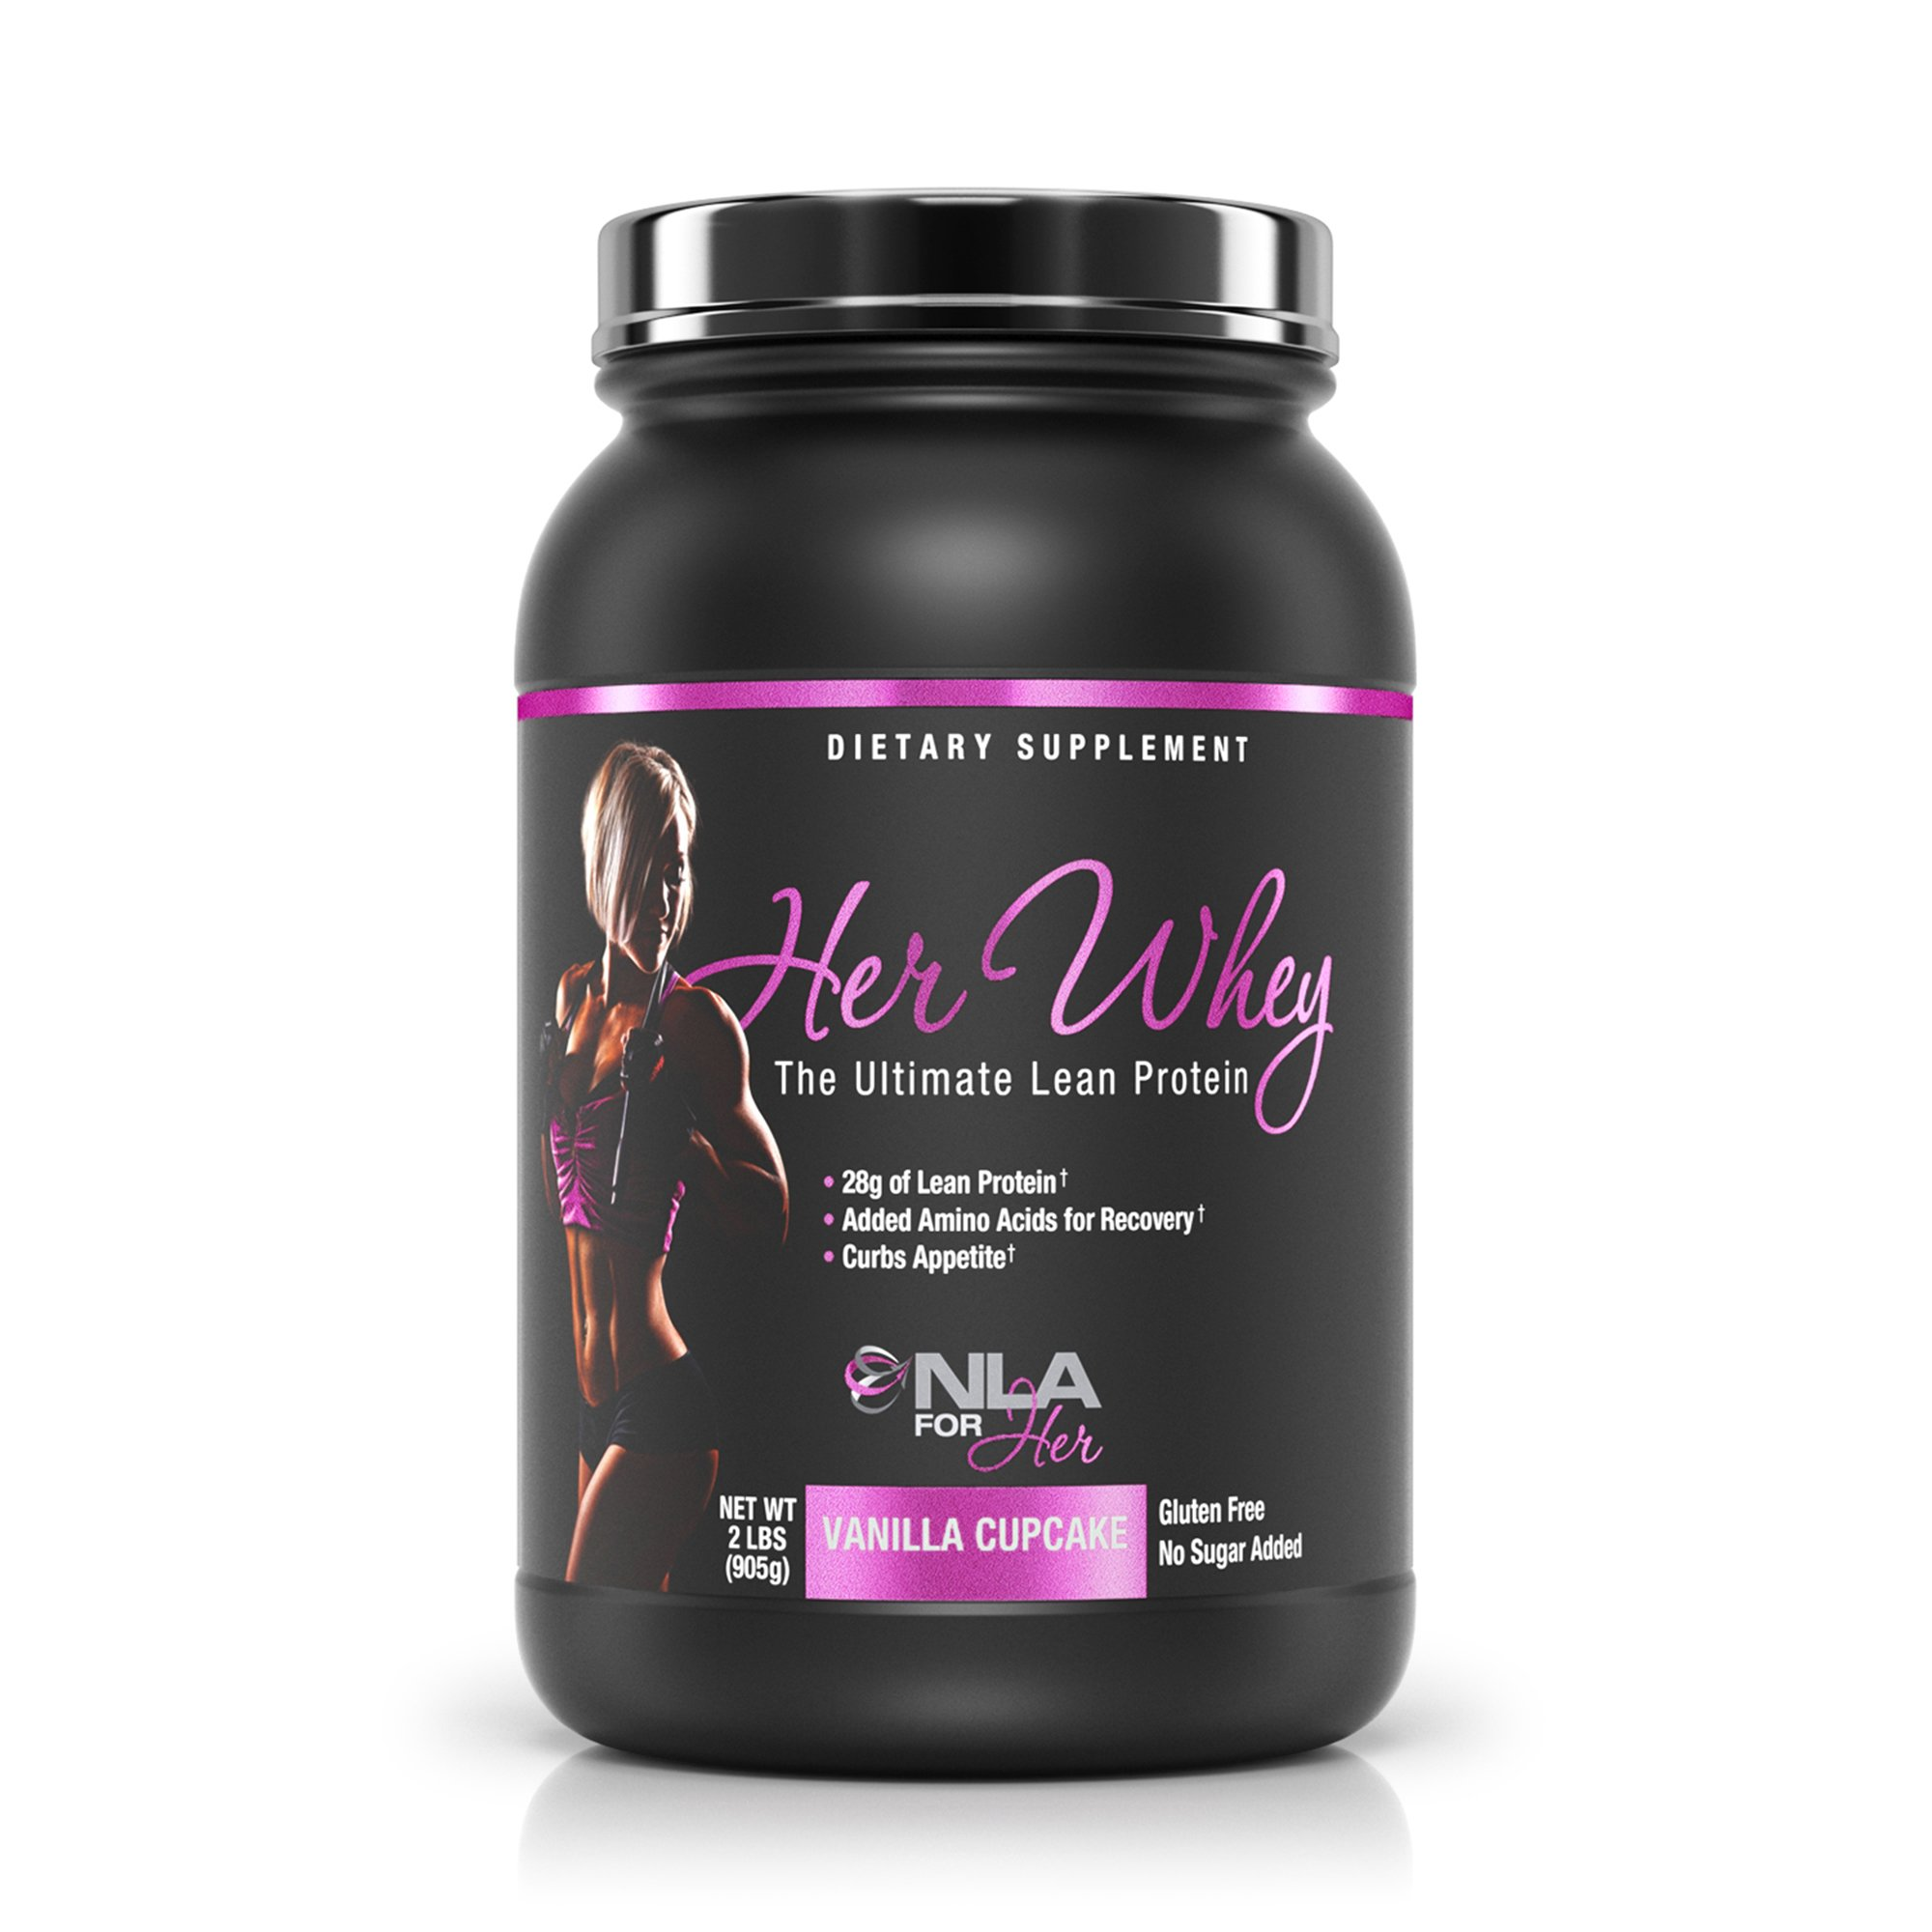 NLA for Her - Her Whey - Ultimate Lean Whey Isolate Protein - 28g of Lean Protein, Added Amino Acids for Recovery, Builds Muscle, & Helps Curb Appetite - Vanilla Cupcake - 2 Lb Tub